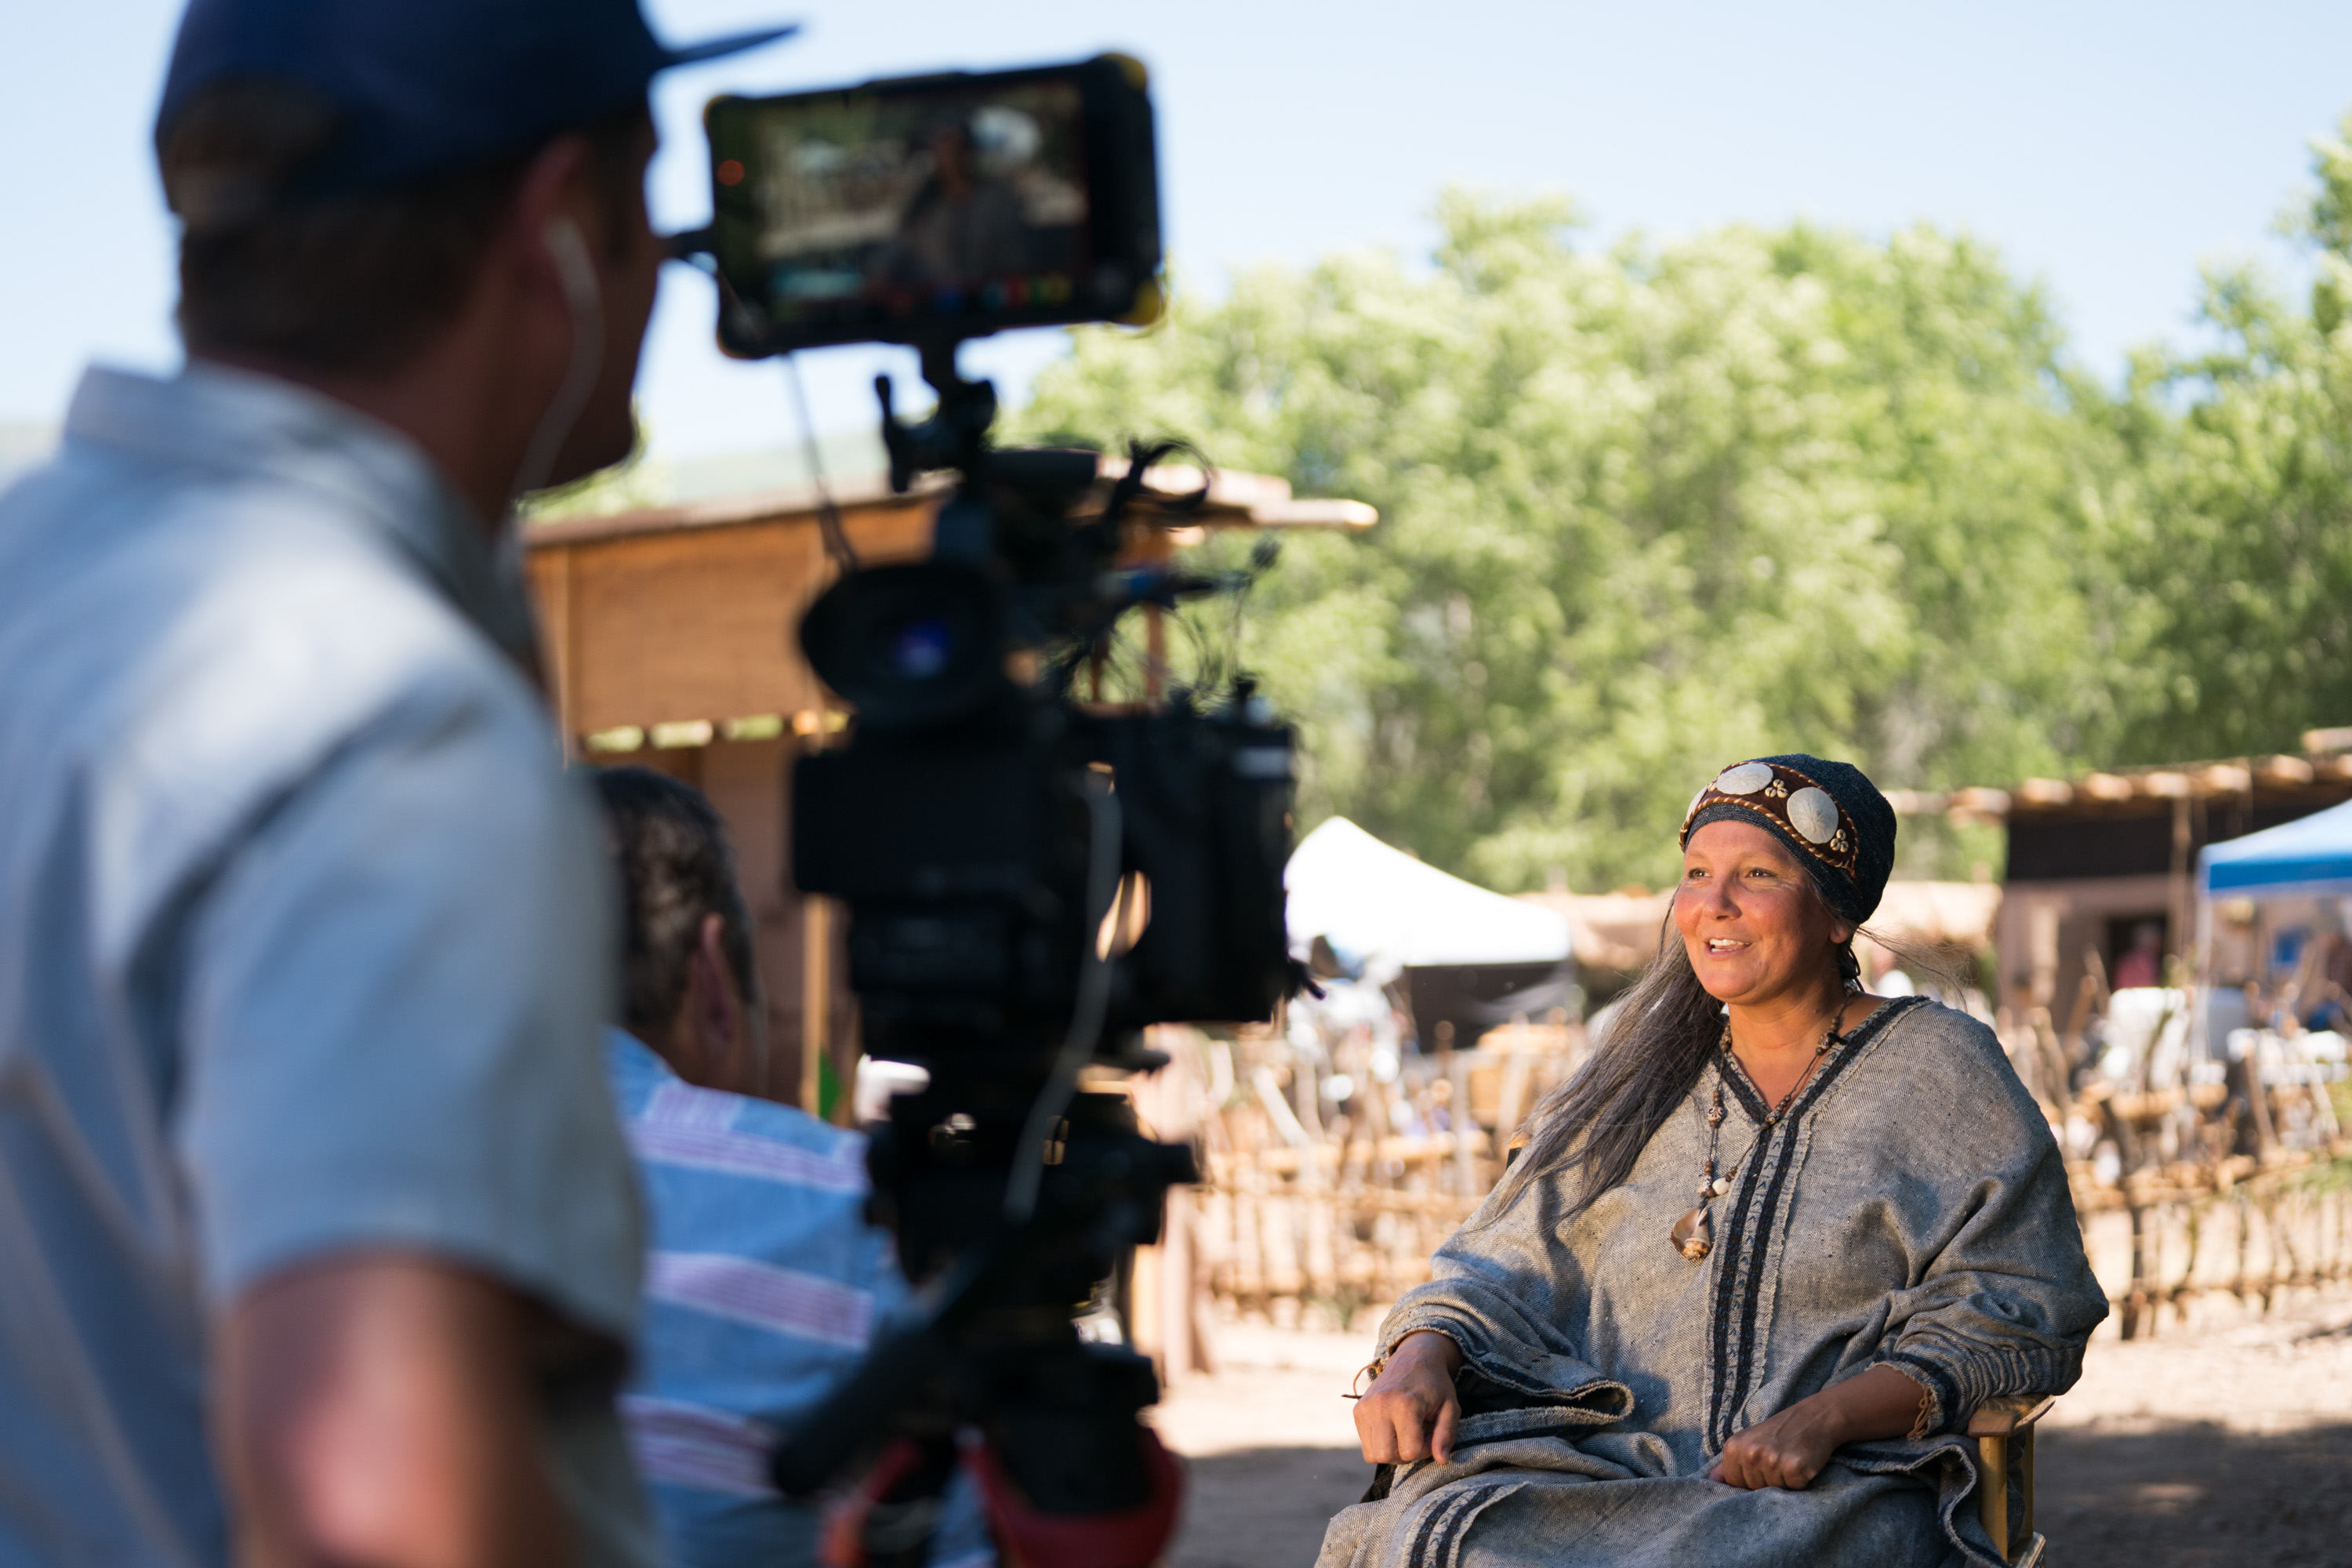 Kymberly Mellen, who plays Sariah in the Book of Mormon Video Library project, sits for an interview on set while shooting Season 2 of the series near Springville, Utah, Wednesday, June 13, 2018.